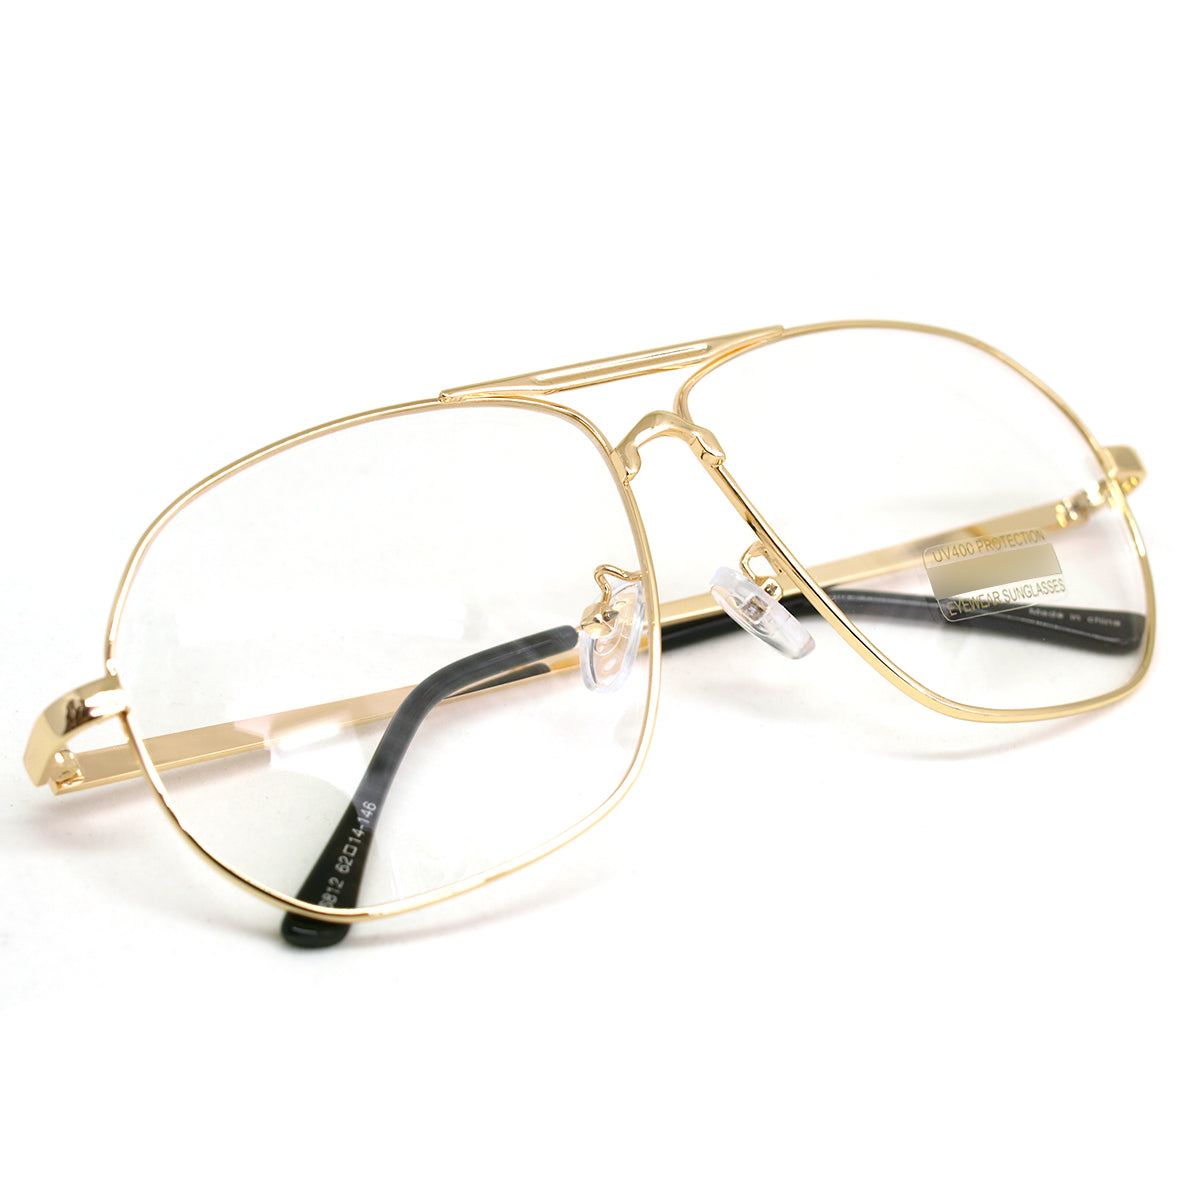 Vintage Aviator Eyeglasses Metal Frames Clear Lens Glasses Non-prescription 6812 - ENCACC